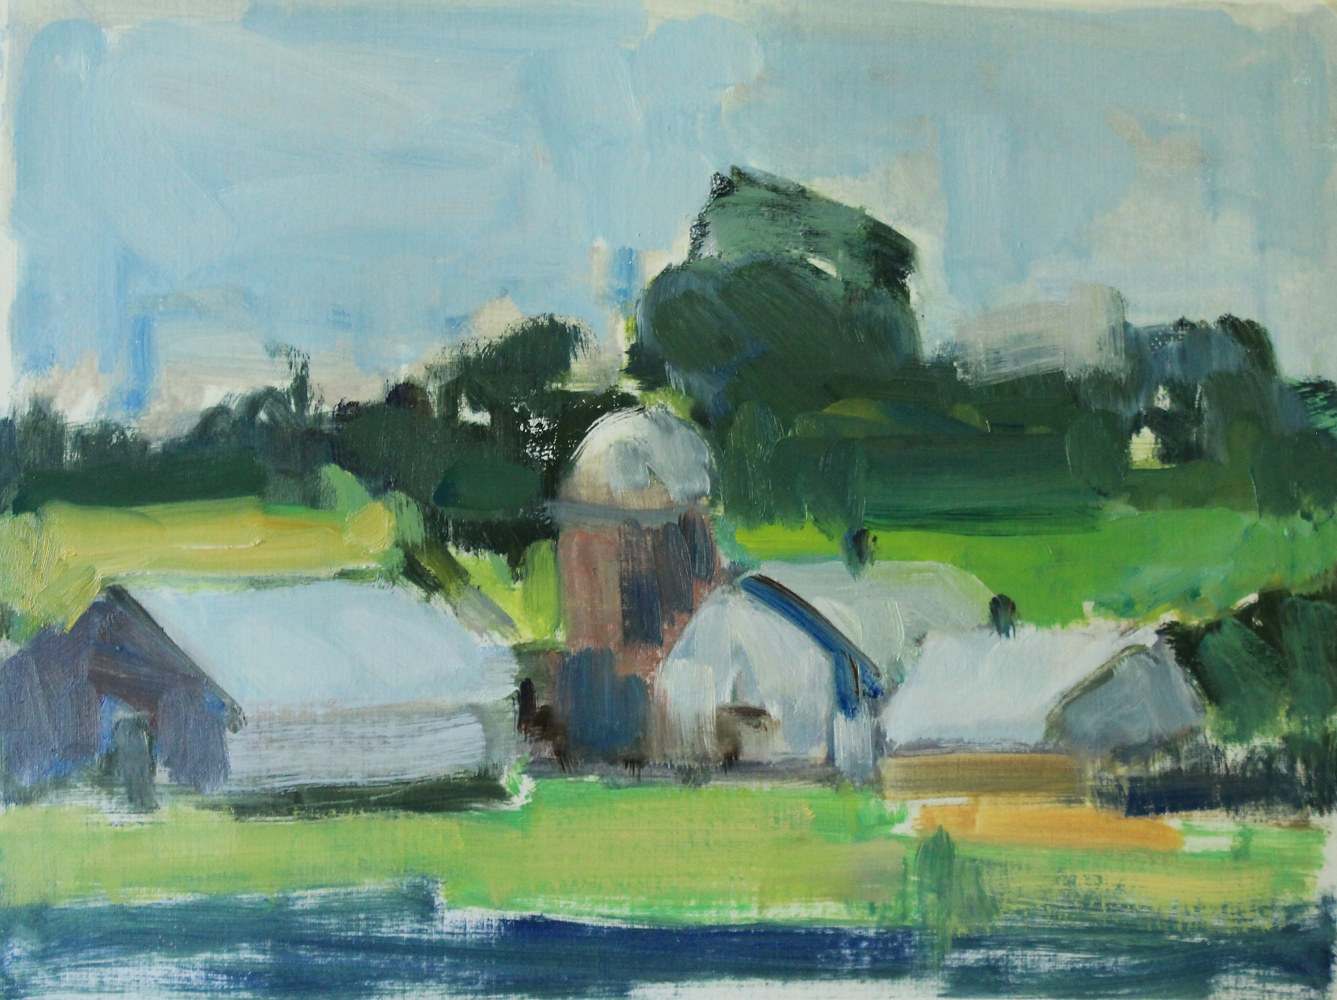 "Denmark Farm ll, oil on paper, 8""x 11 1/2"" by Susan Horn"